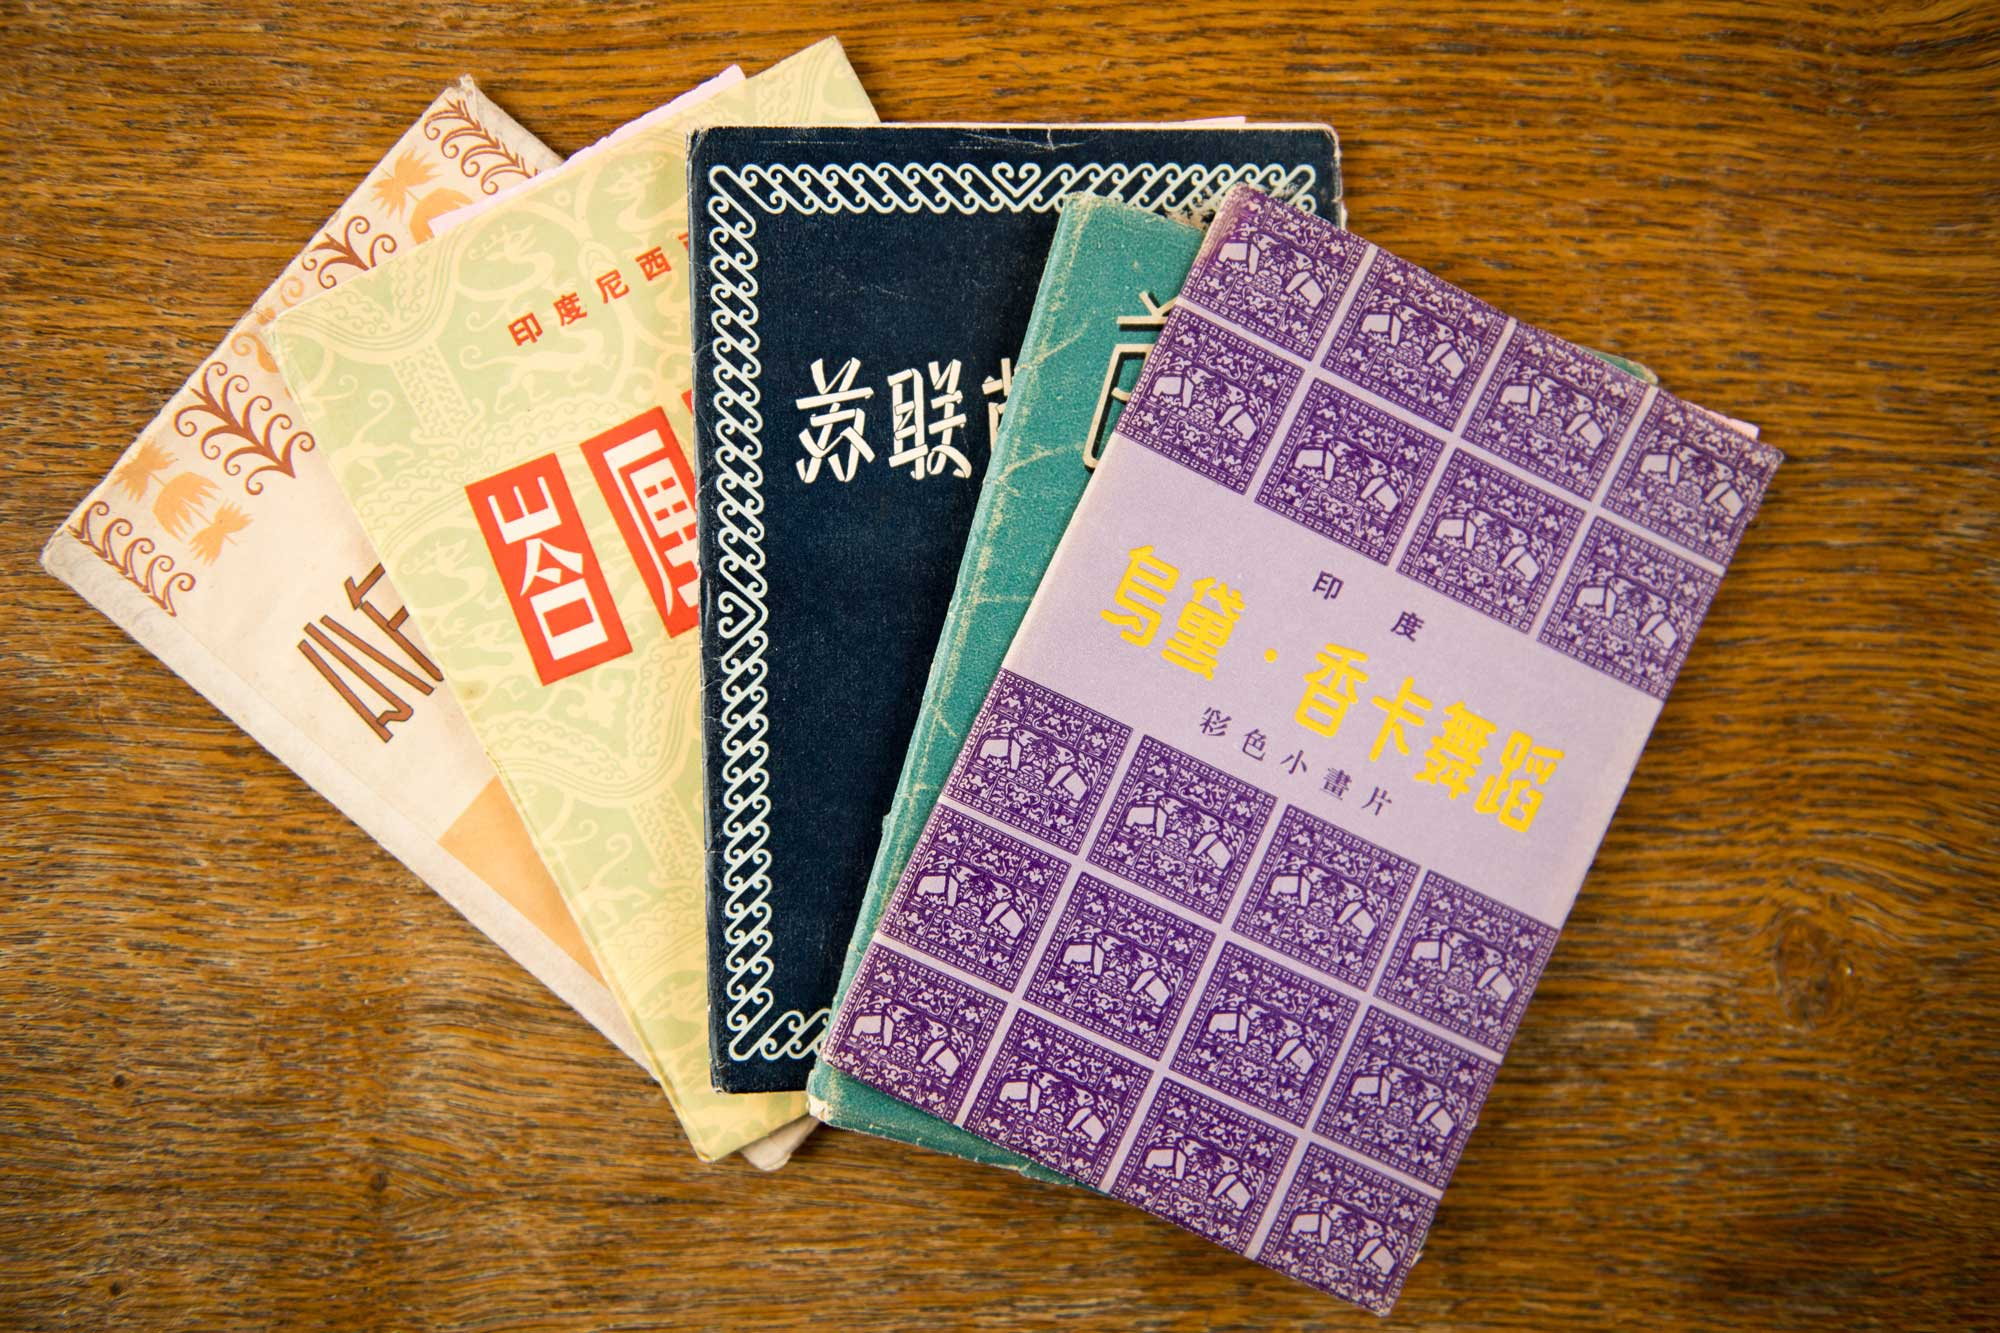 The front is the cover of a postcard set to commemorate works by Uday Shankar Company's visit to China in 1957